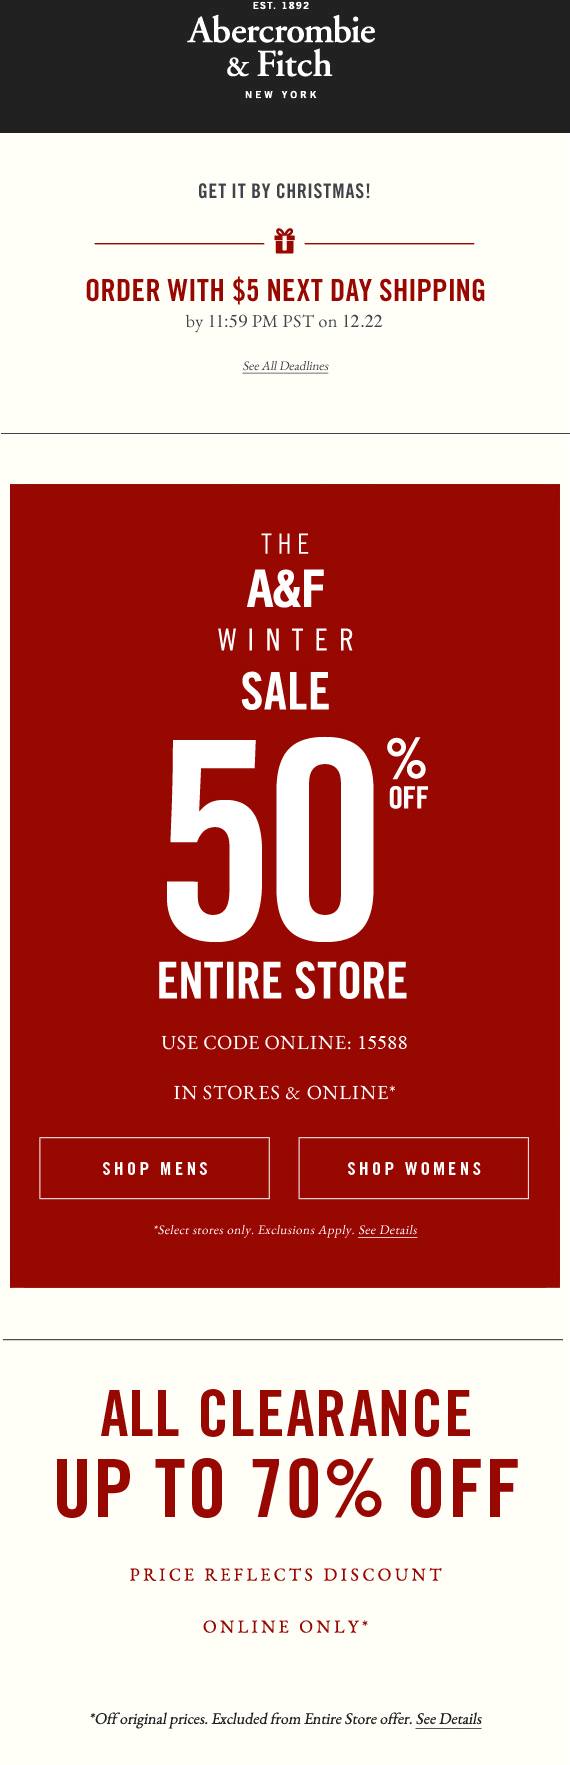 Abercrombie & Fitch Coupon January 2018 50% off everything at Abercrombie & Fitch, or online via promo code 15588